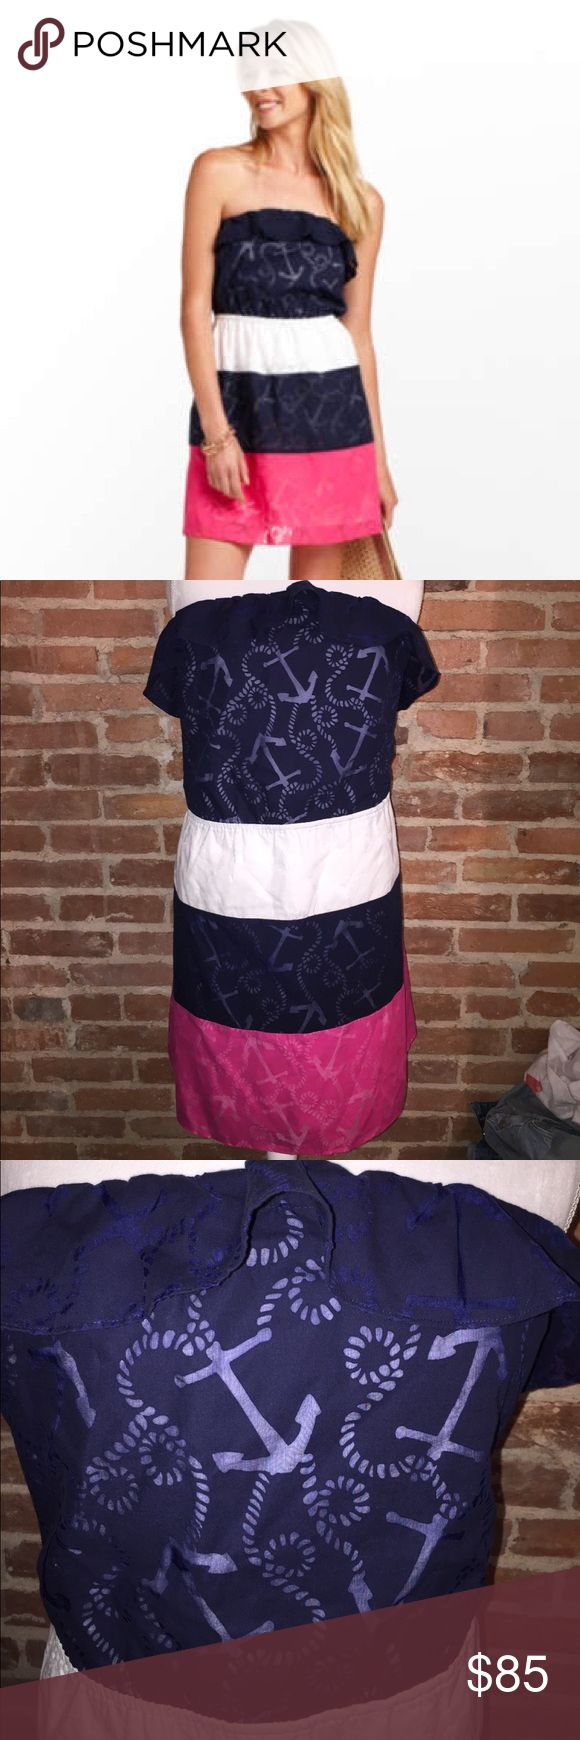 Lilly Pulitzer Libby Anchor Dress Sz XL EUC Lilly Pulitzer Libby Anchor dress size XL. Fully lined excellent condition Lilly Pulitzer Dresses Midi